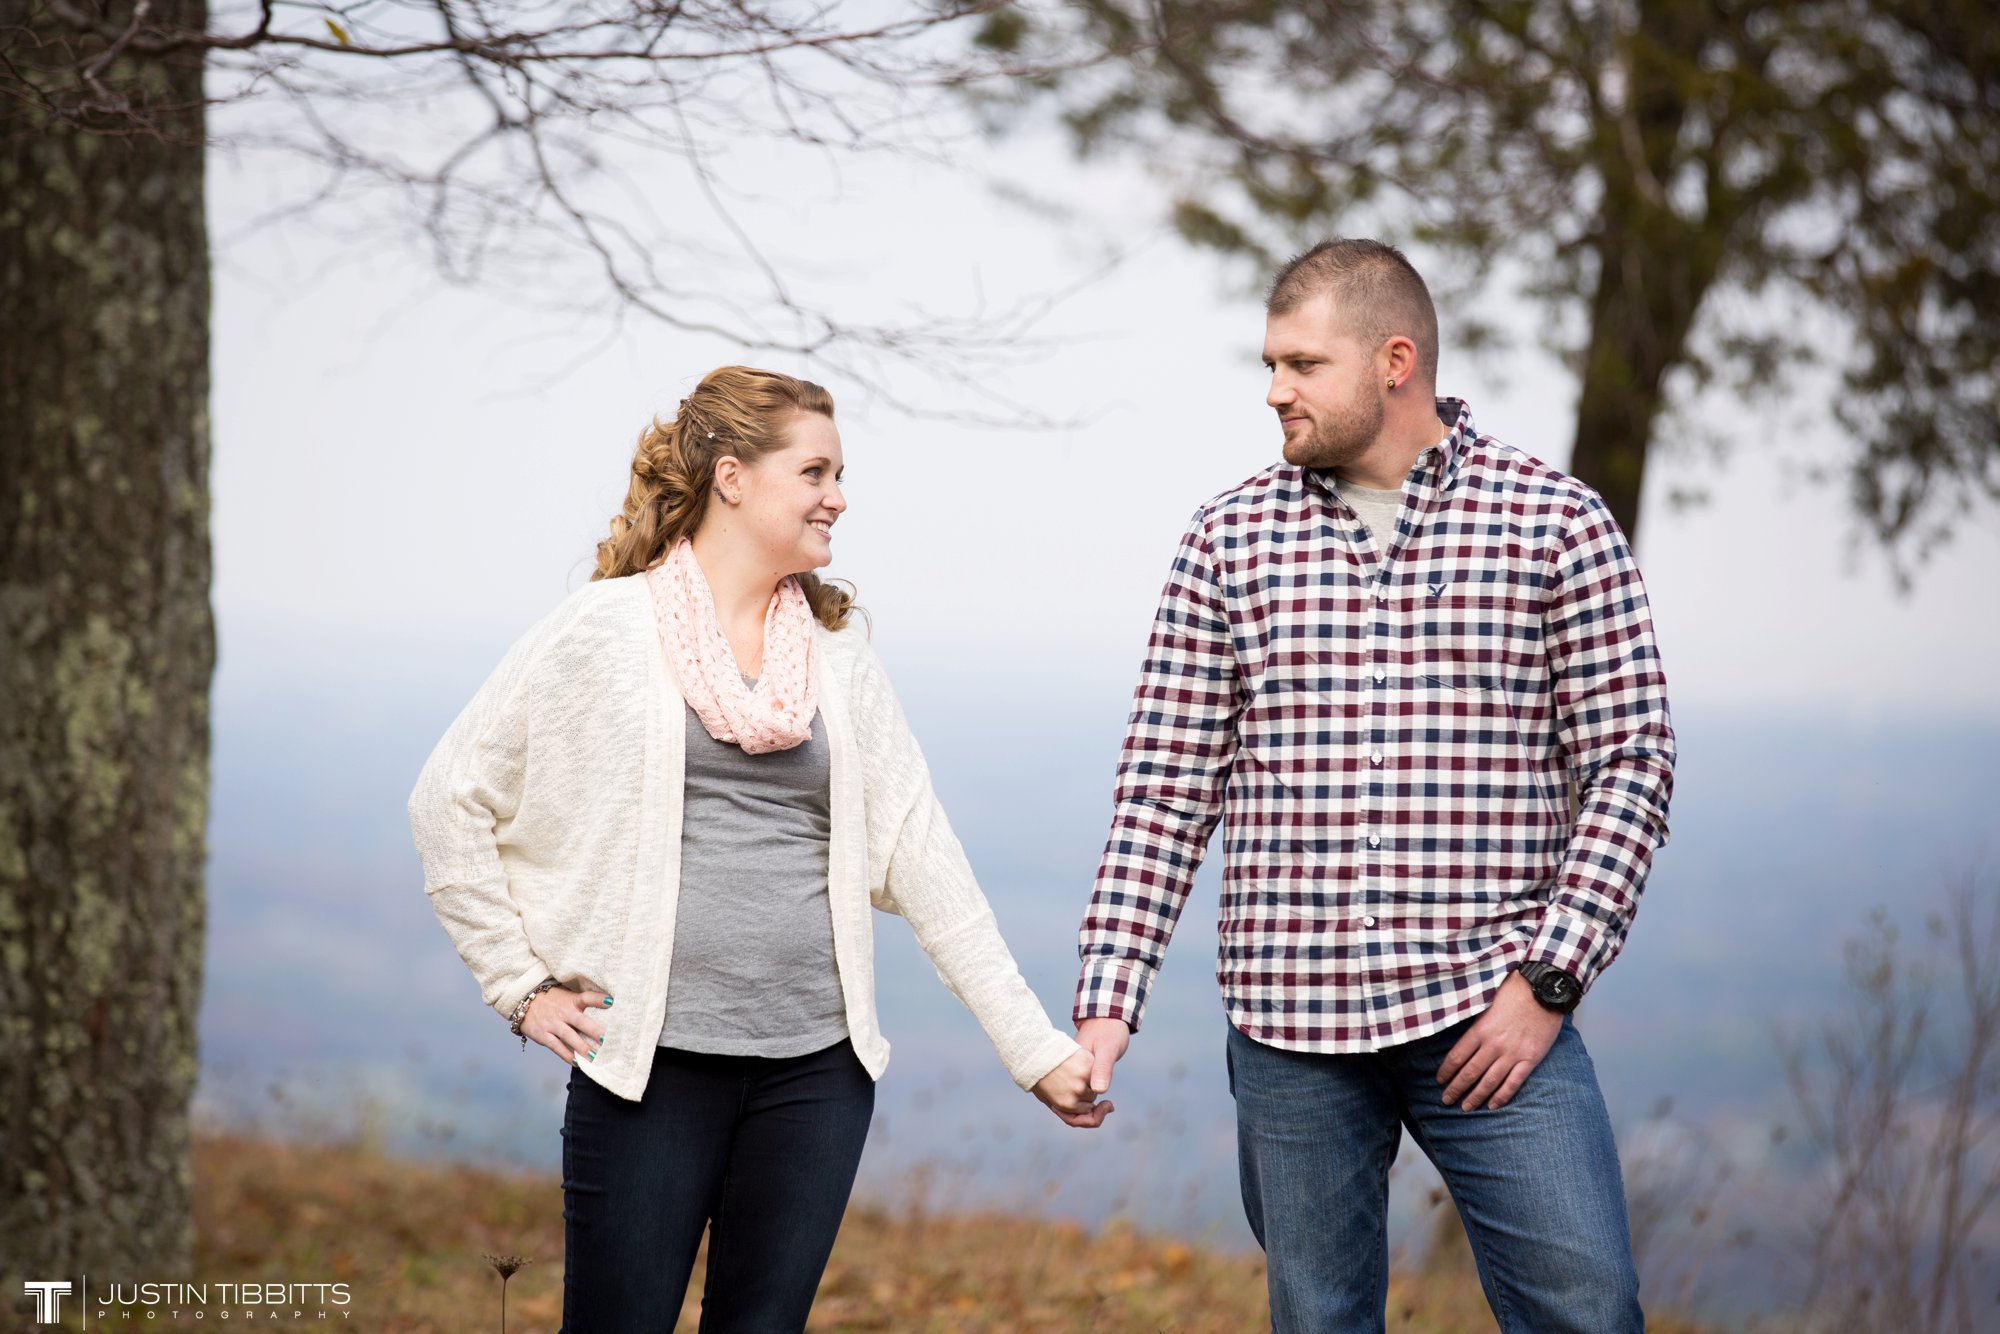 Justin Tibbitts Photography Ashlee and Steves Thatcher Park, New York Engagement Shoot-26